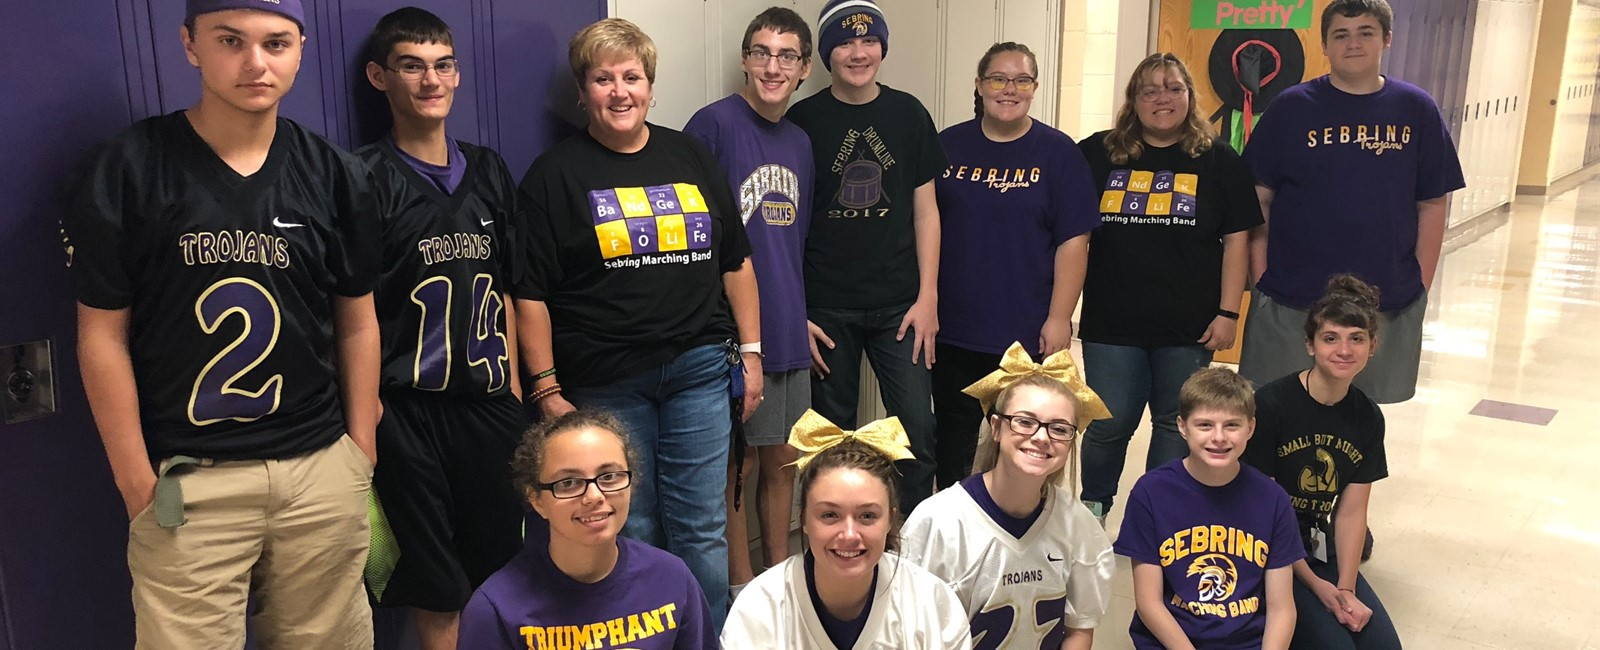 Purple & Gold day during Spirit Week at Sebiring McKinley High School.